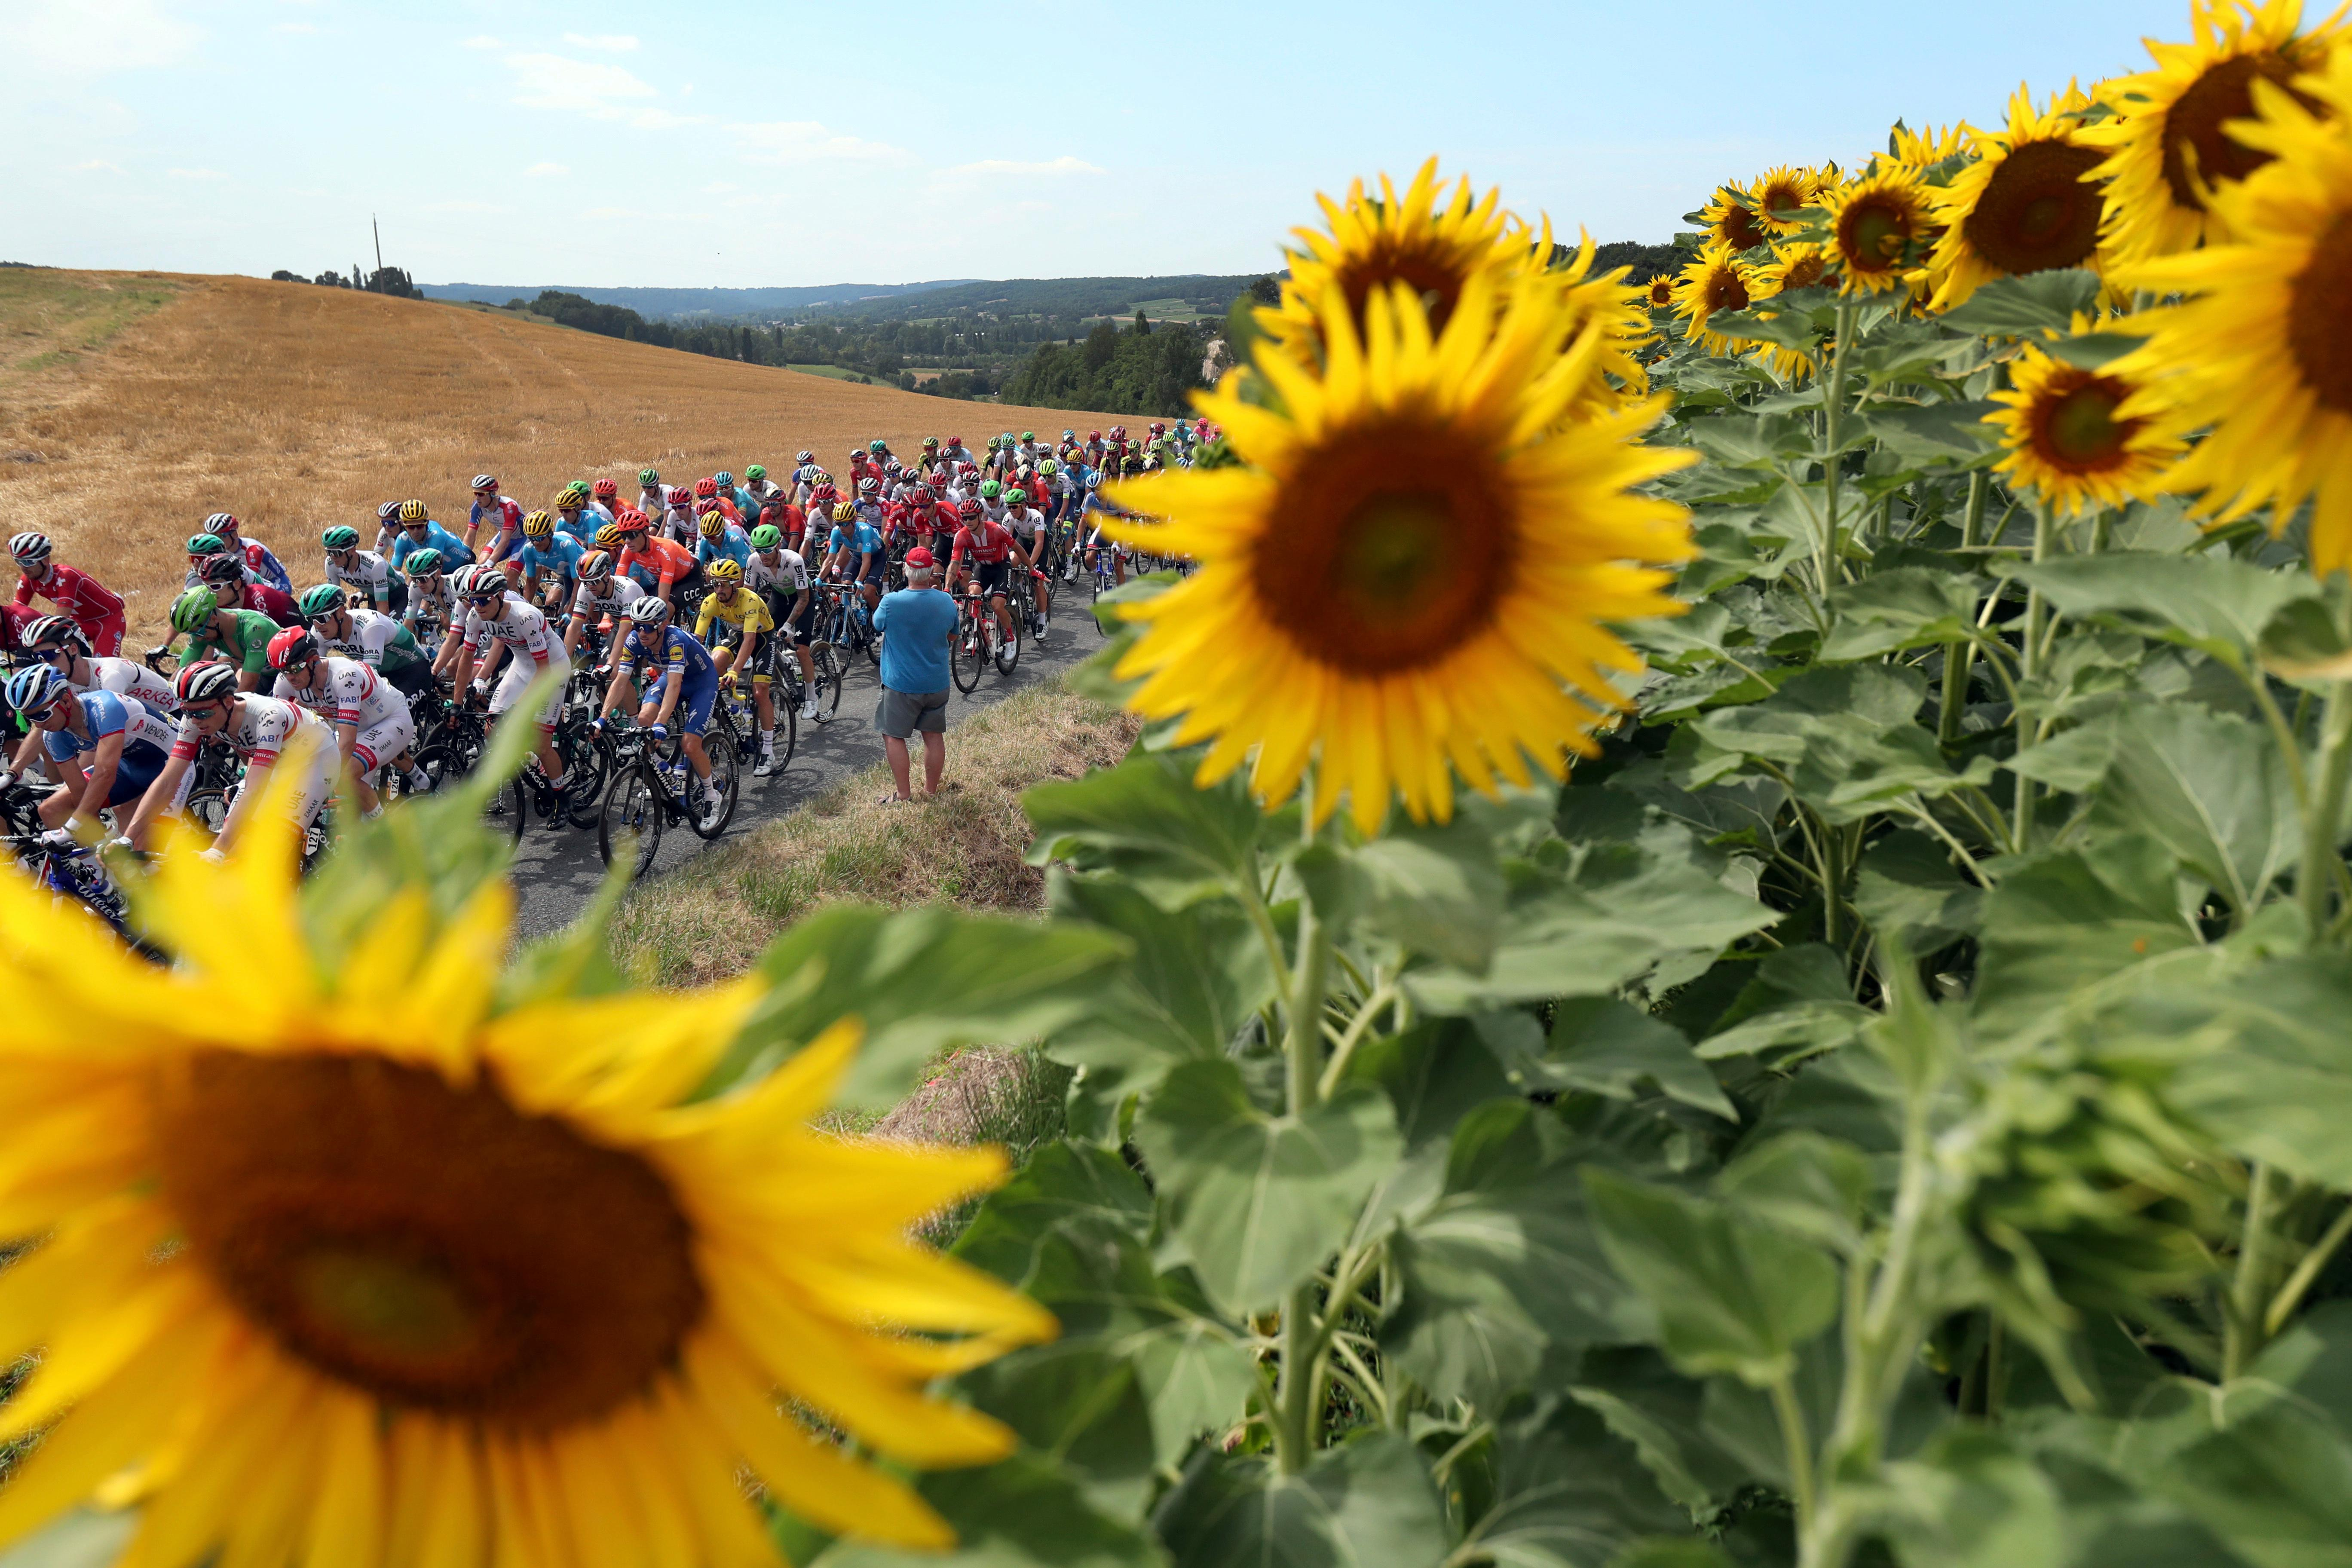 FILE - In this Wednesday, July 17, 2019 file photo the pack rides past a sunflowers fields during the eleventh stage of the Tour de France cycling race over 167 kilometers (103,77 miles) with start in Albi and finish in Toulouse, France. (AP Photo/Thibault Camus, File)